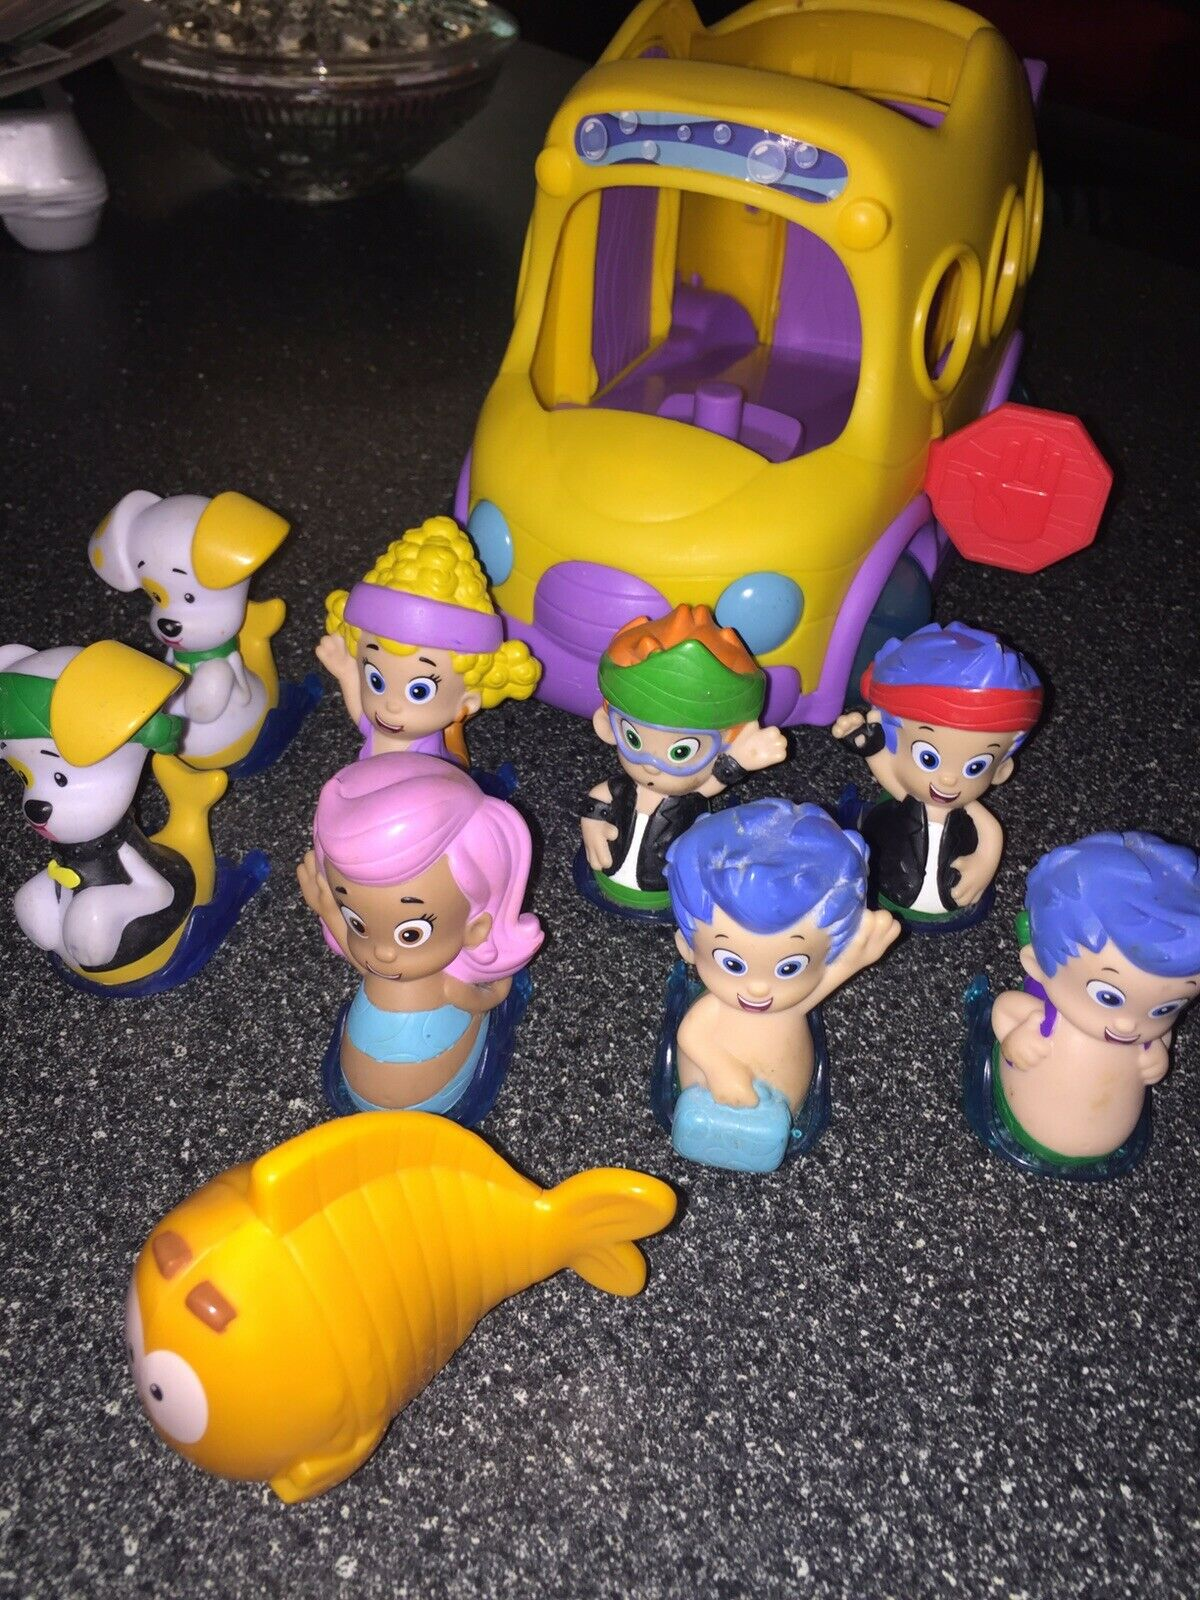 Das Versiegelte Badezimmer Detektiv Conan Bubble Guppies Swim Sational School Bus Mr Grooper Grooper Grooper